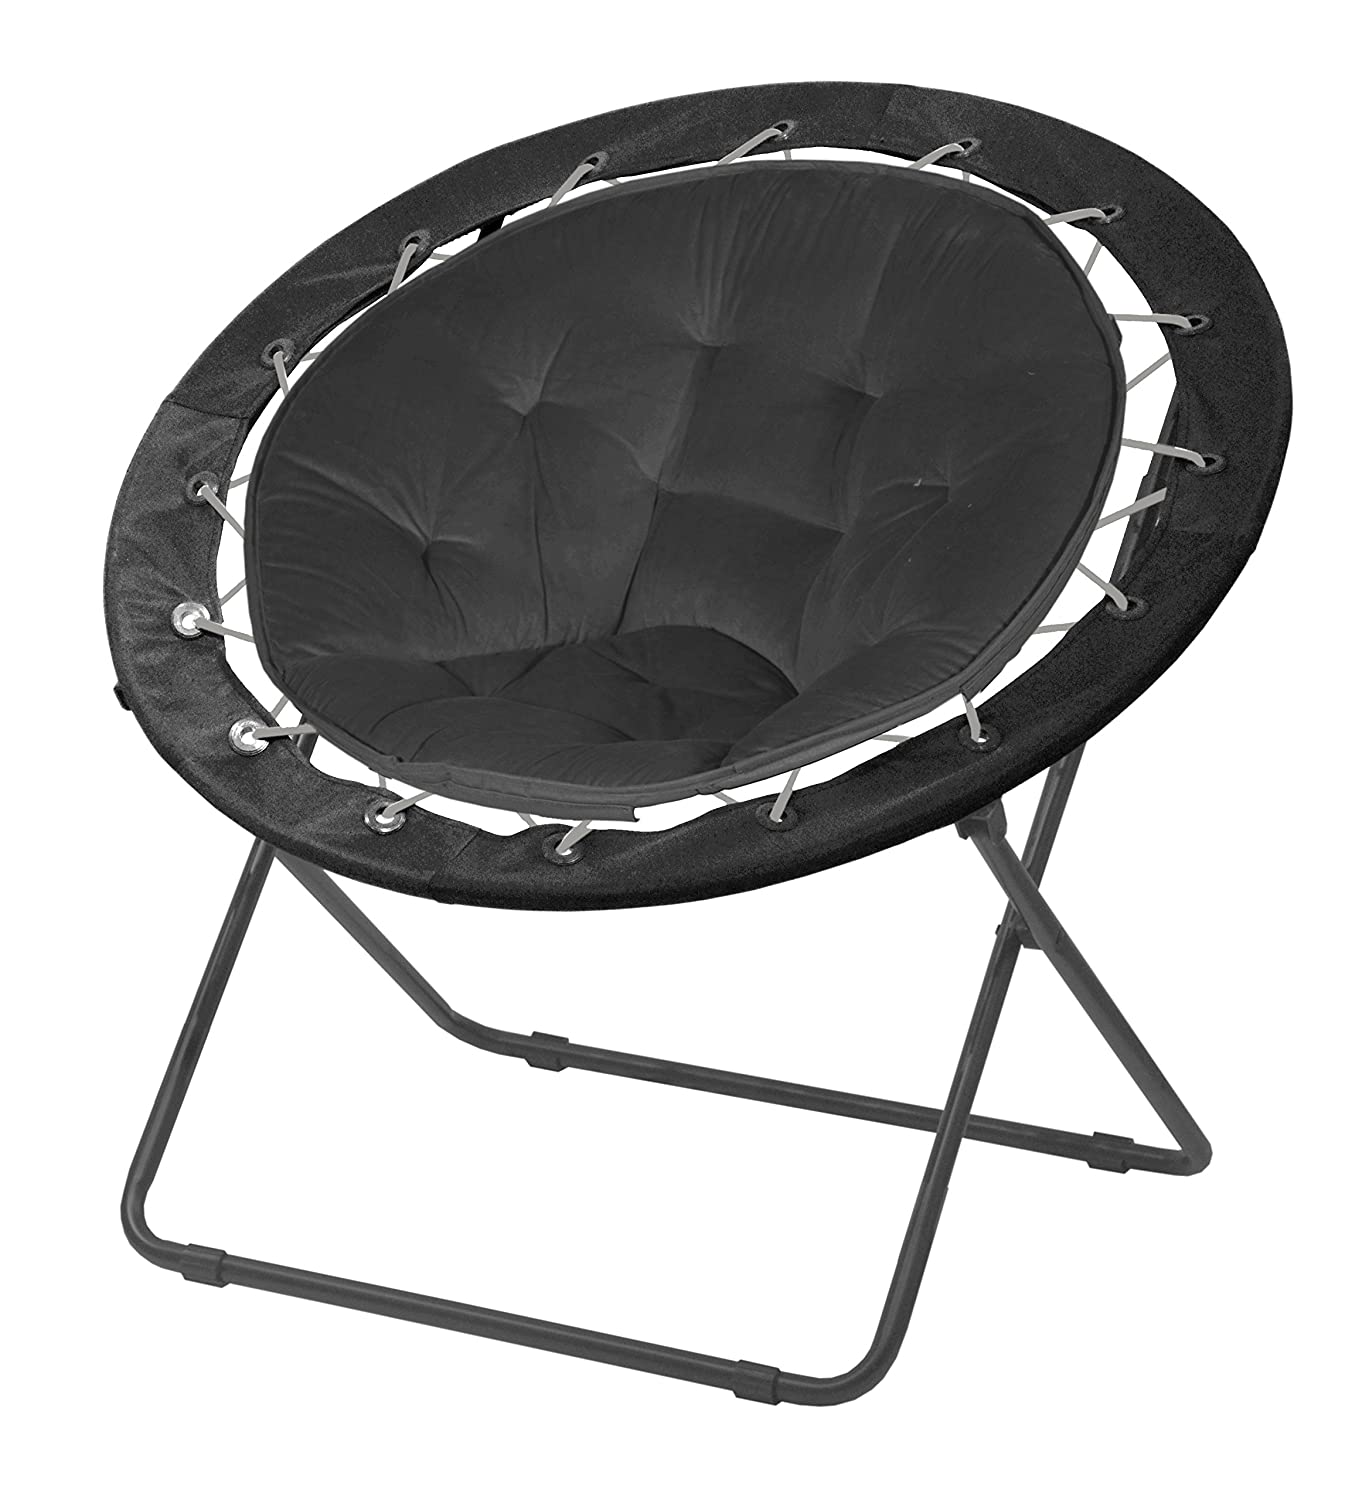 Fabulous Urban Shop Bungee Saucer Chair Navy Forskolin Free Trial Chair Design Images Forskolin Free Trialorg